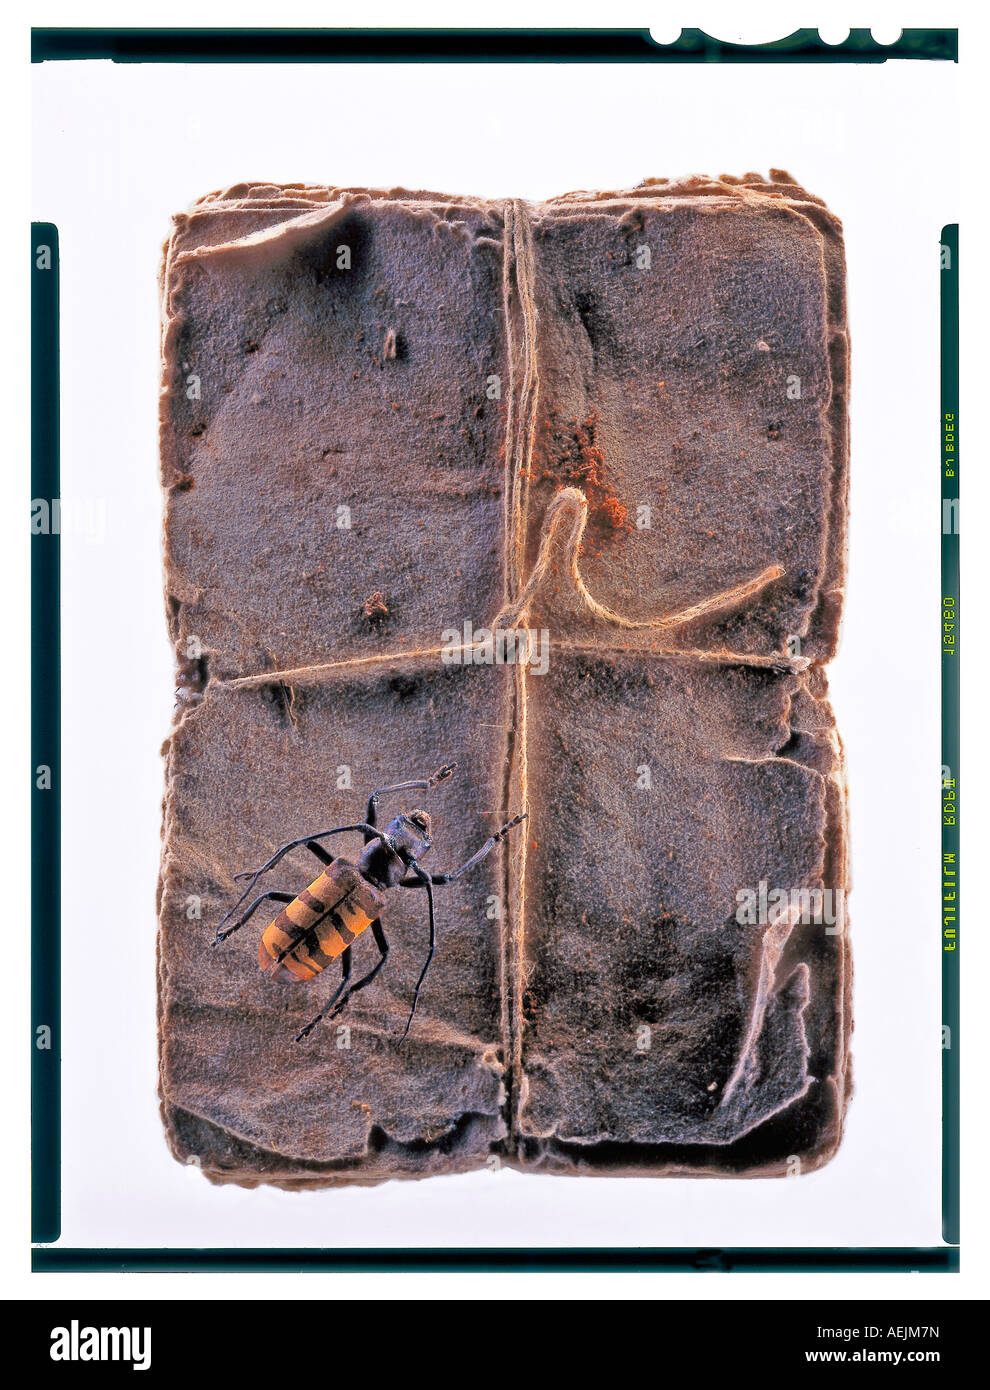 Old note book with yello-brown beetle on top - Stock Image